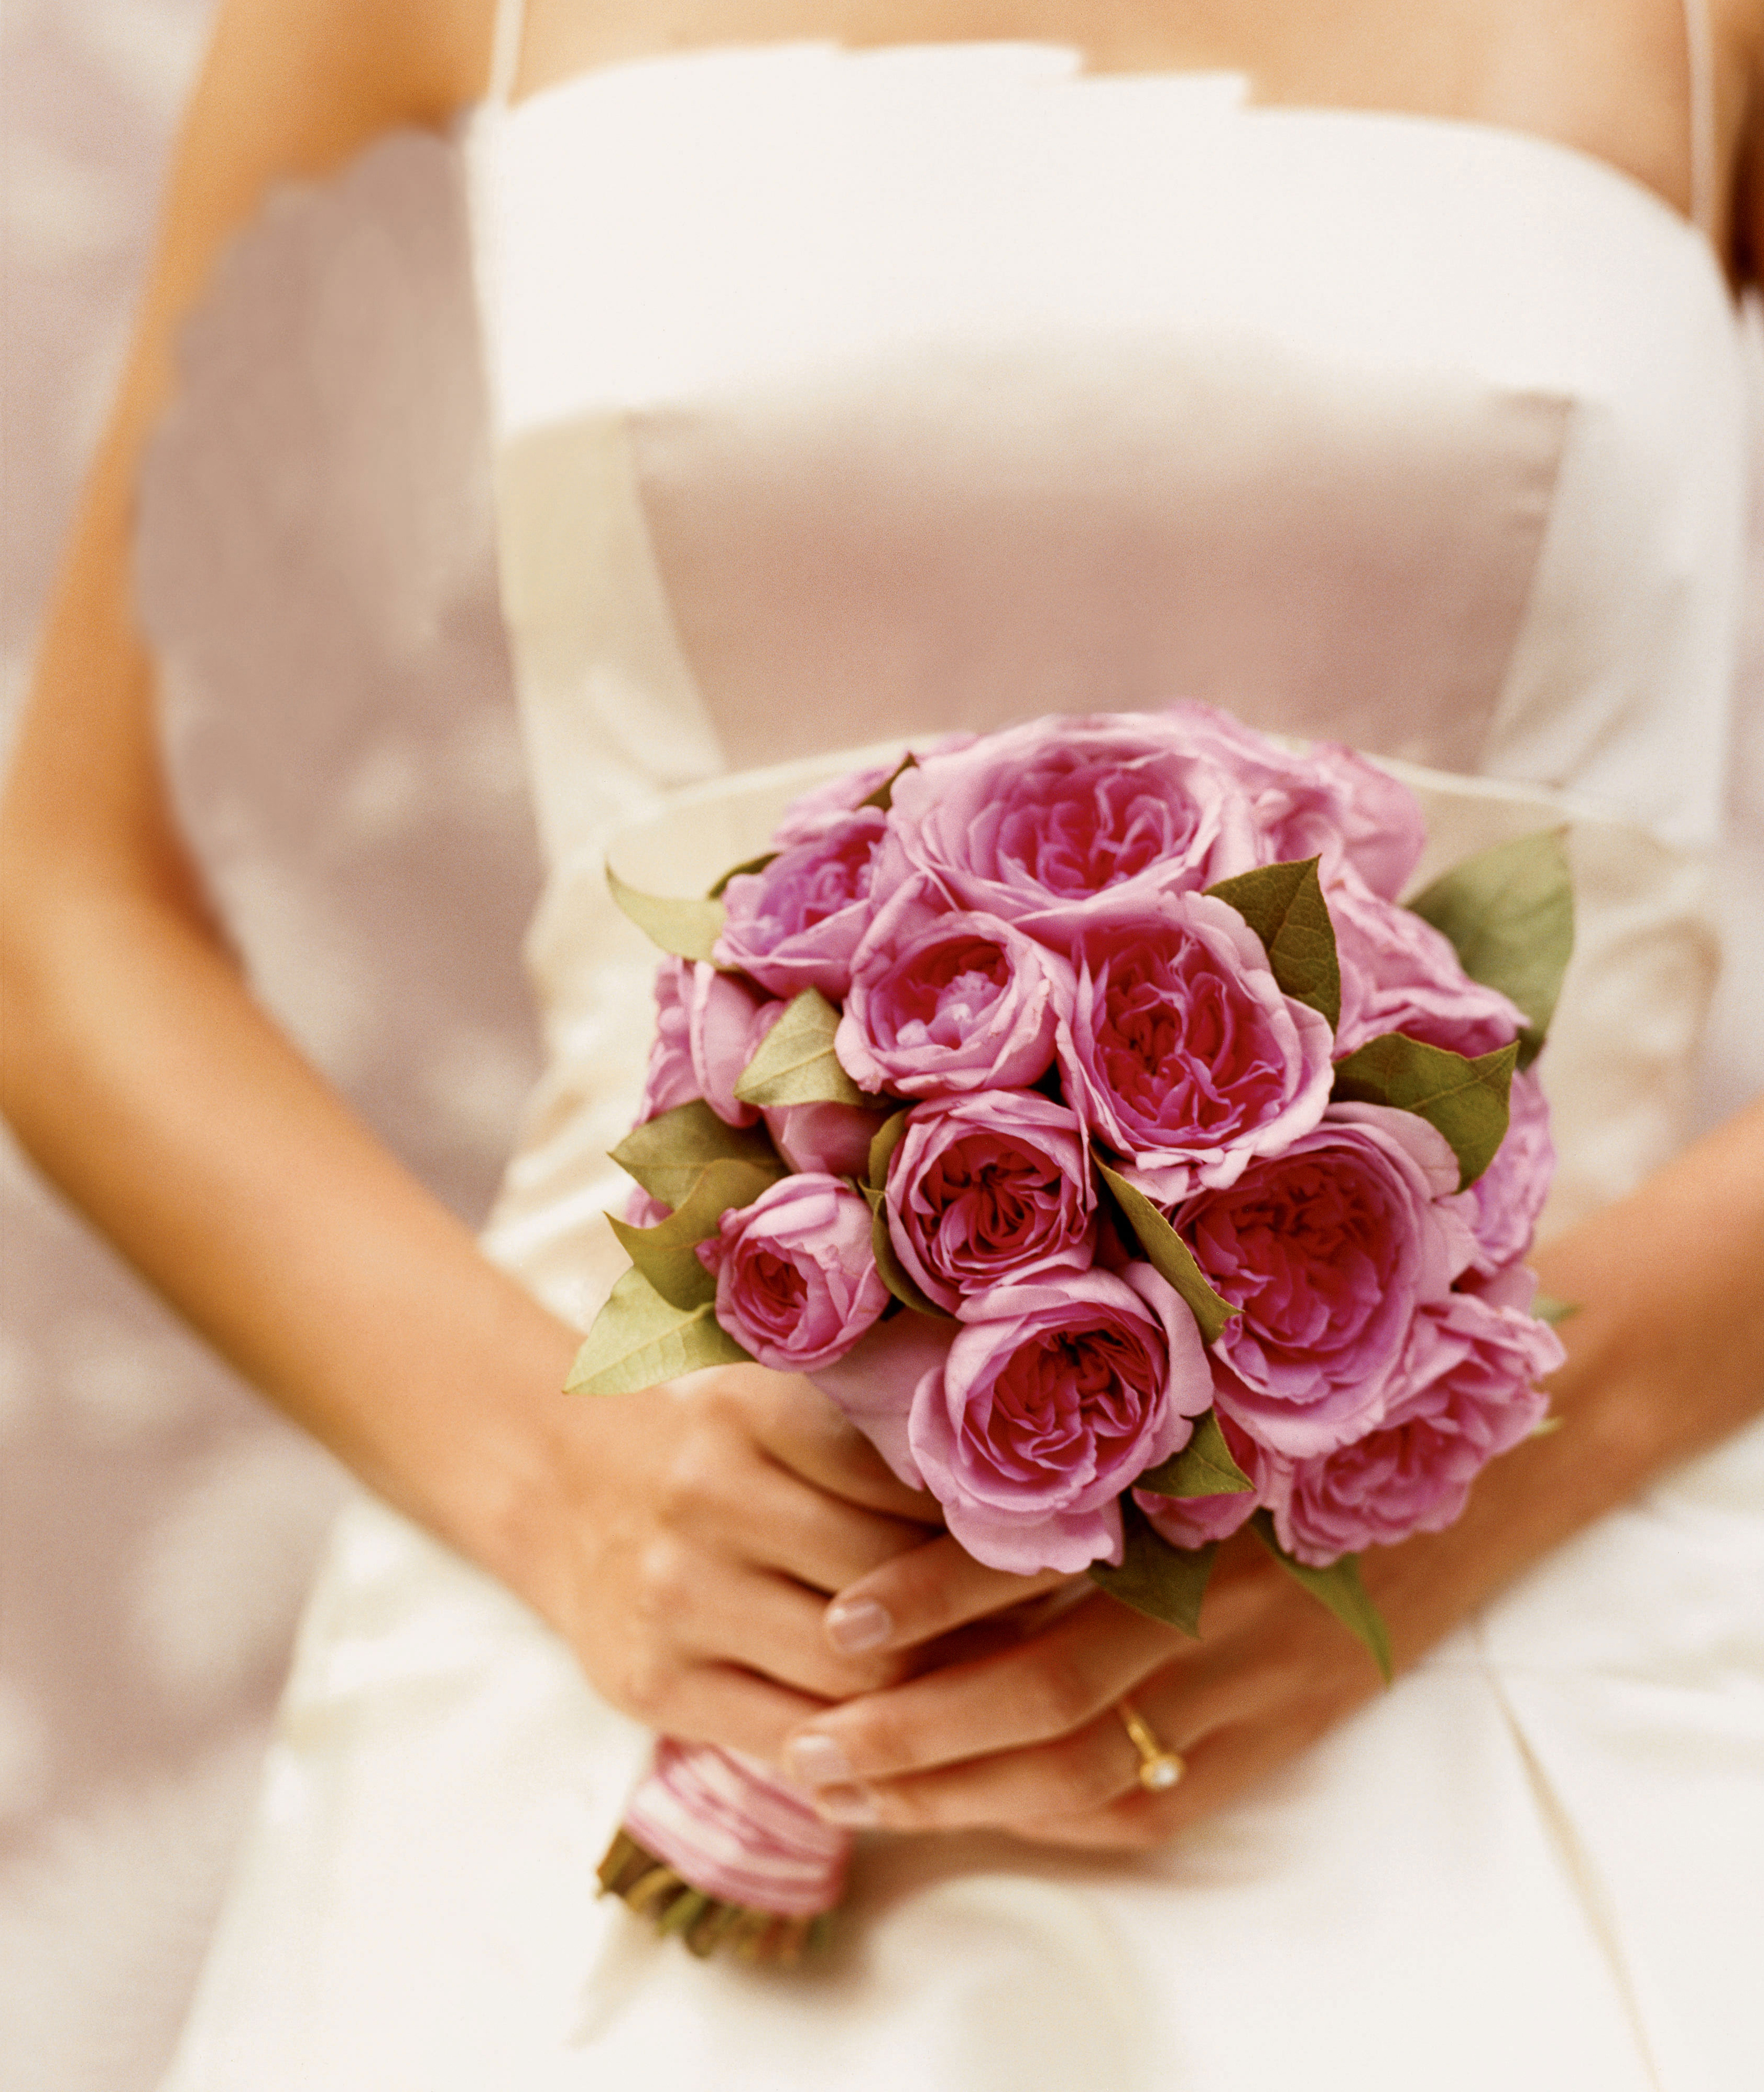 Sunset magazine your wedding flowers how to make a bridal bouquet izmirmasajfo